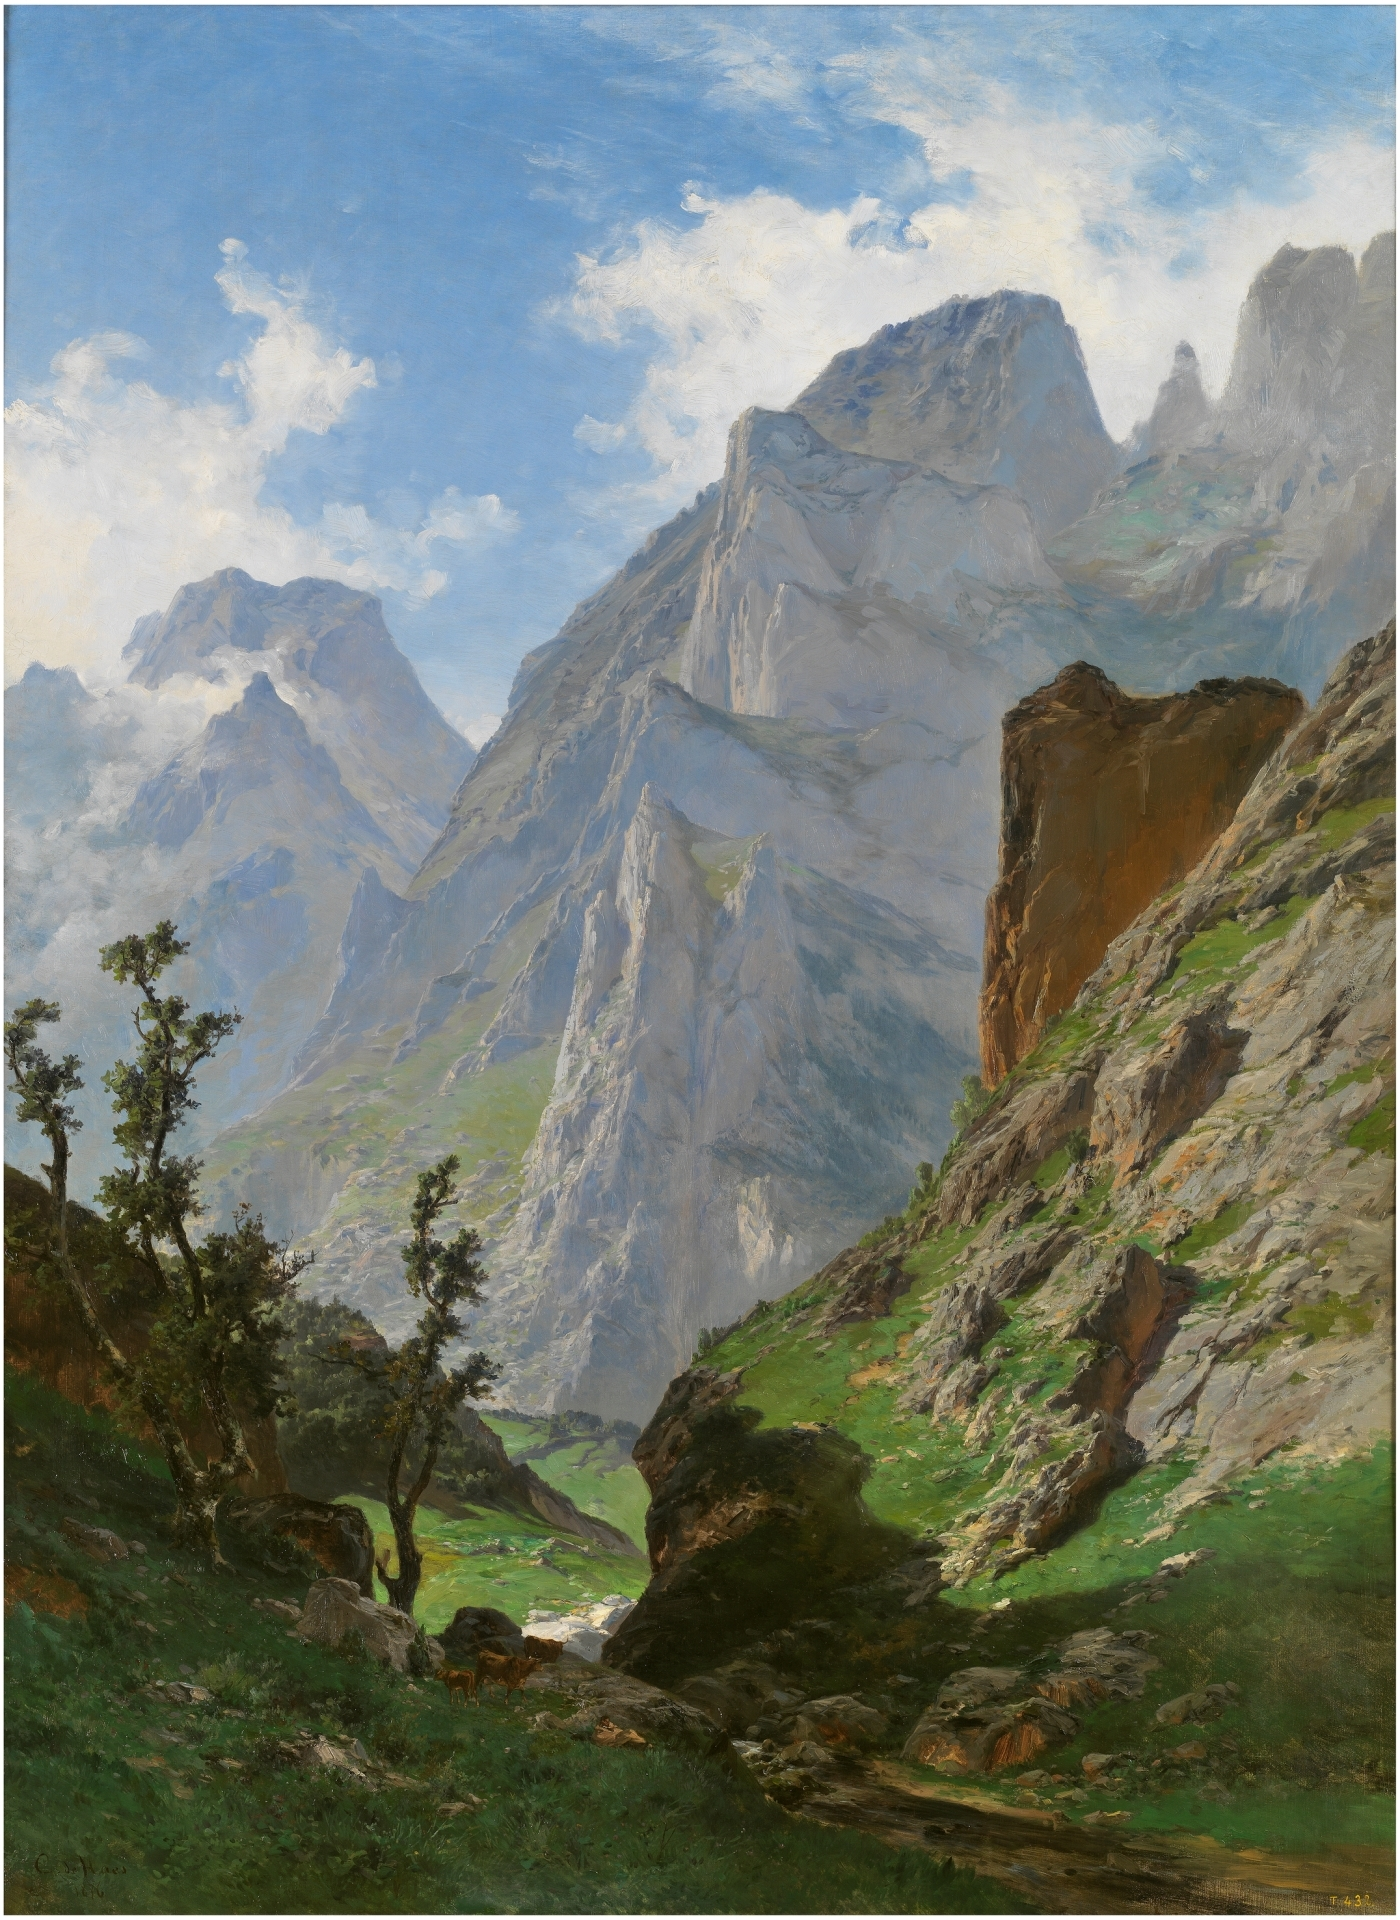 Oil painting. Steep mountains rise up into the sky, green grass and sparse trees giving way to naked rock face. White clouds crown those bare peaks amidst a blue sky.